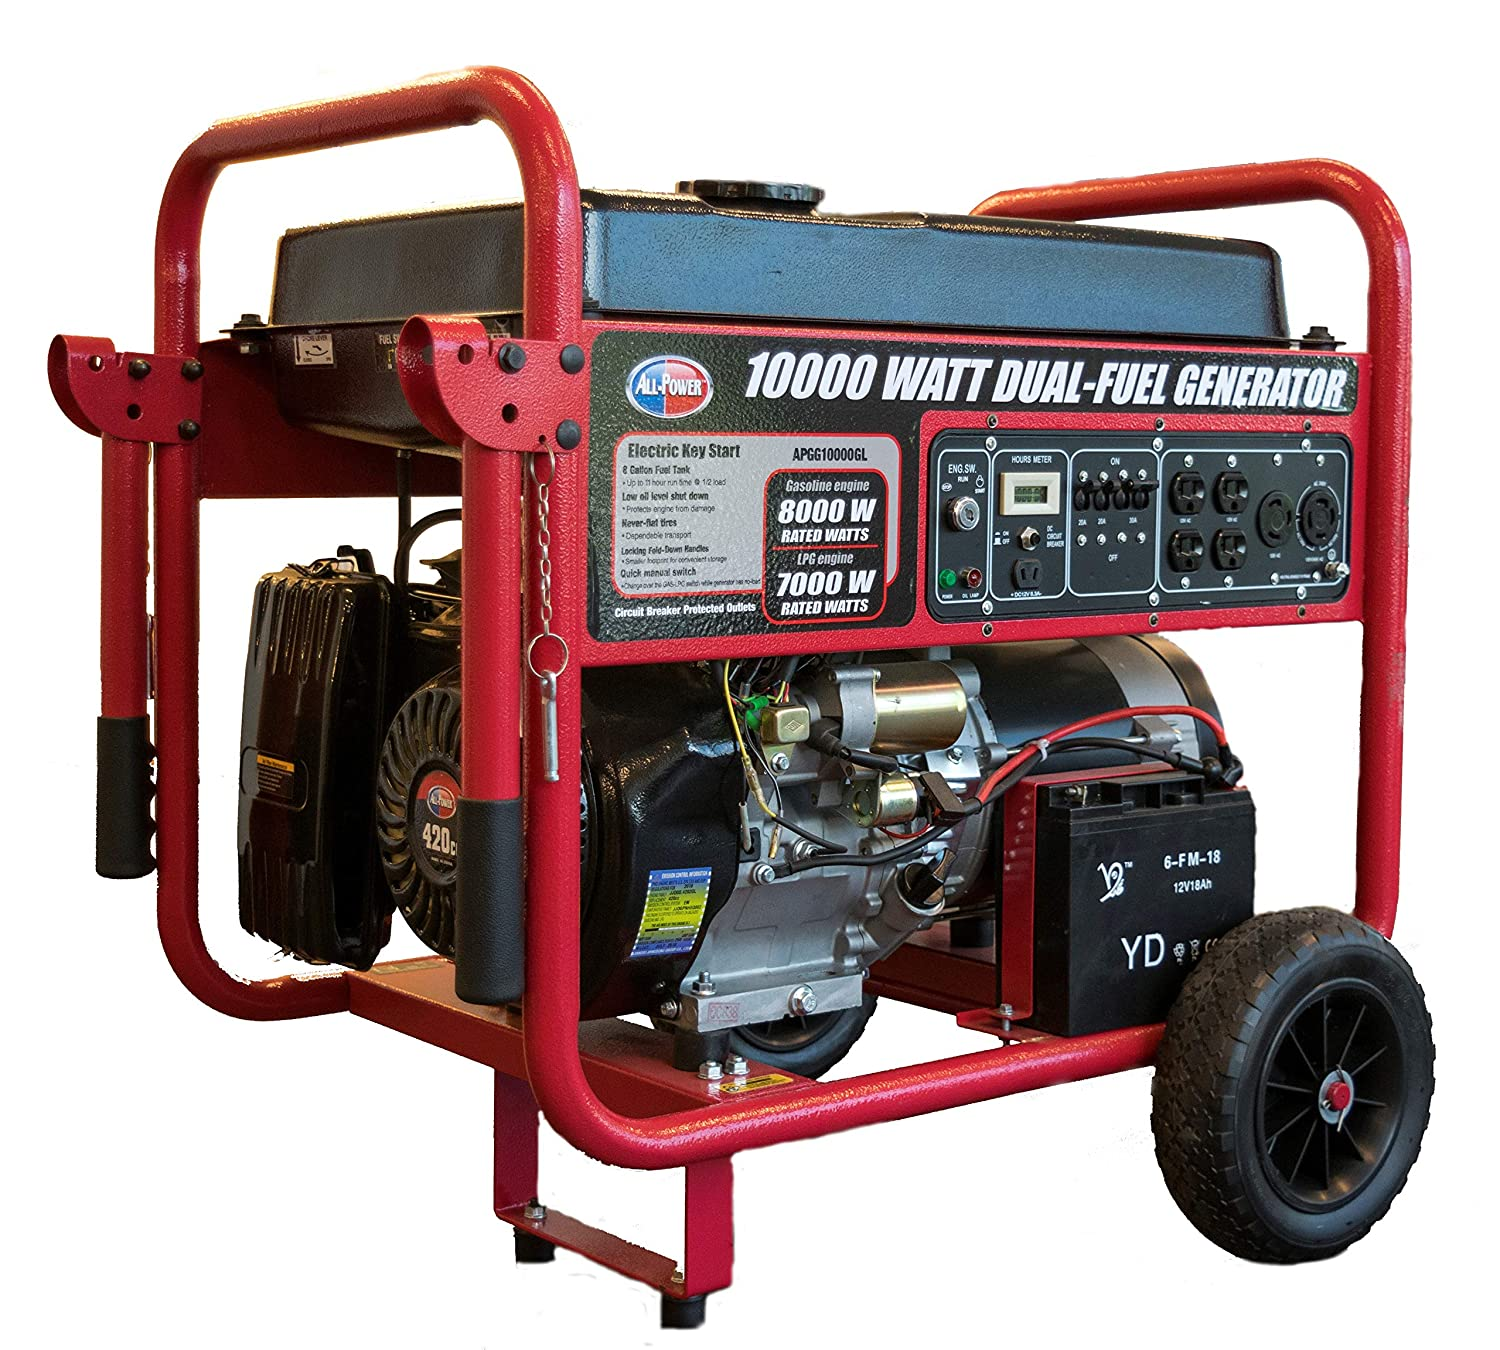 Best 10000 Watt Generator Top 10 Units Reviewed 2020